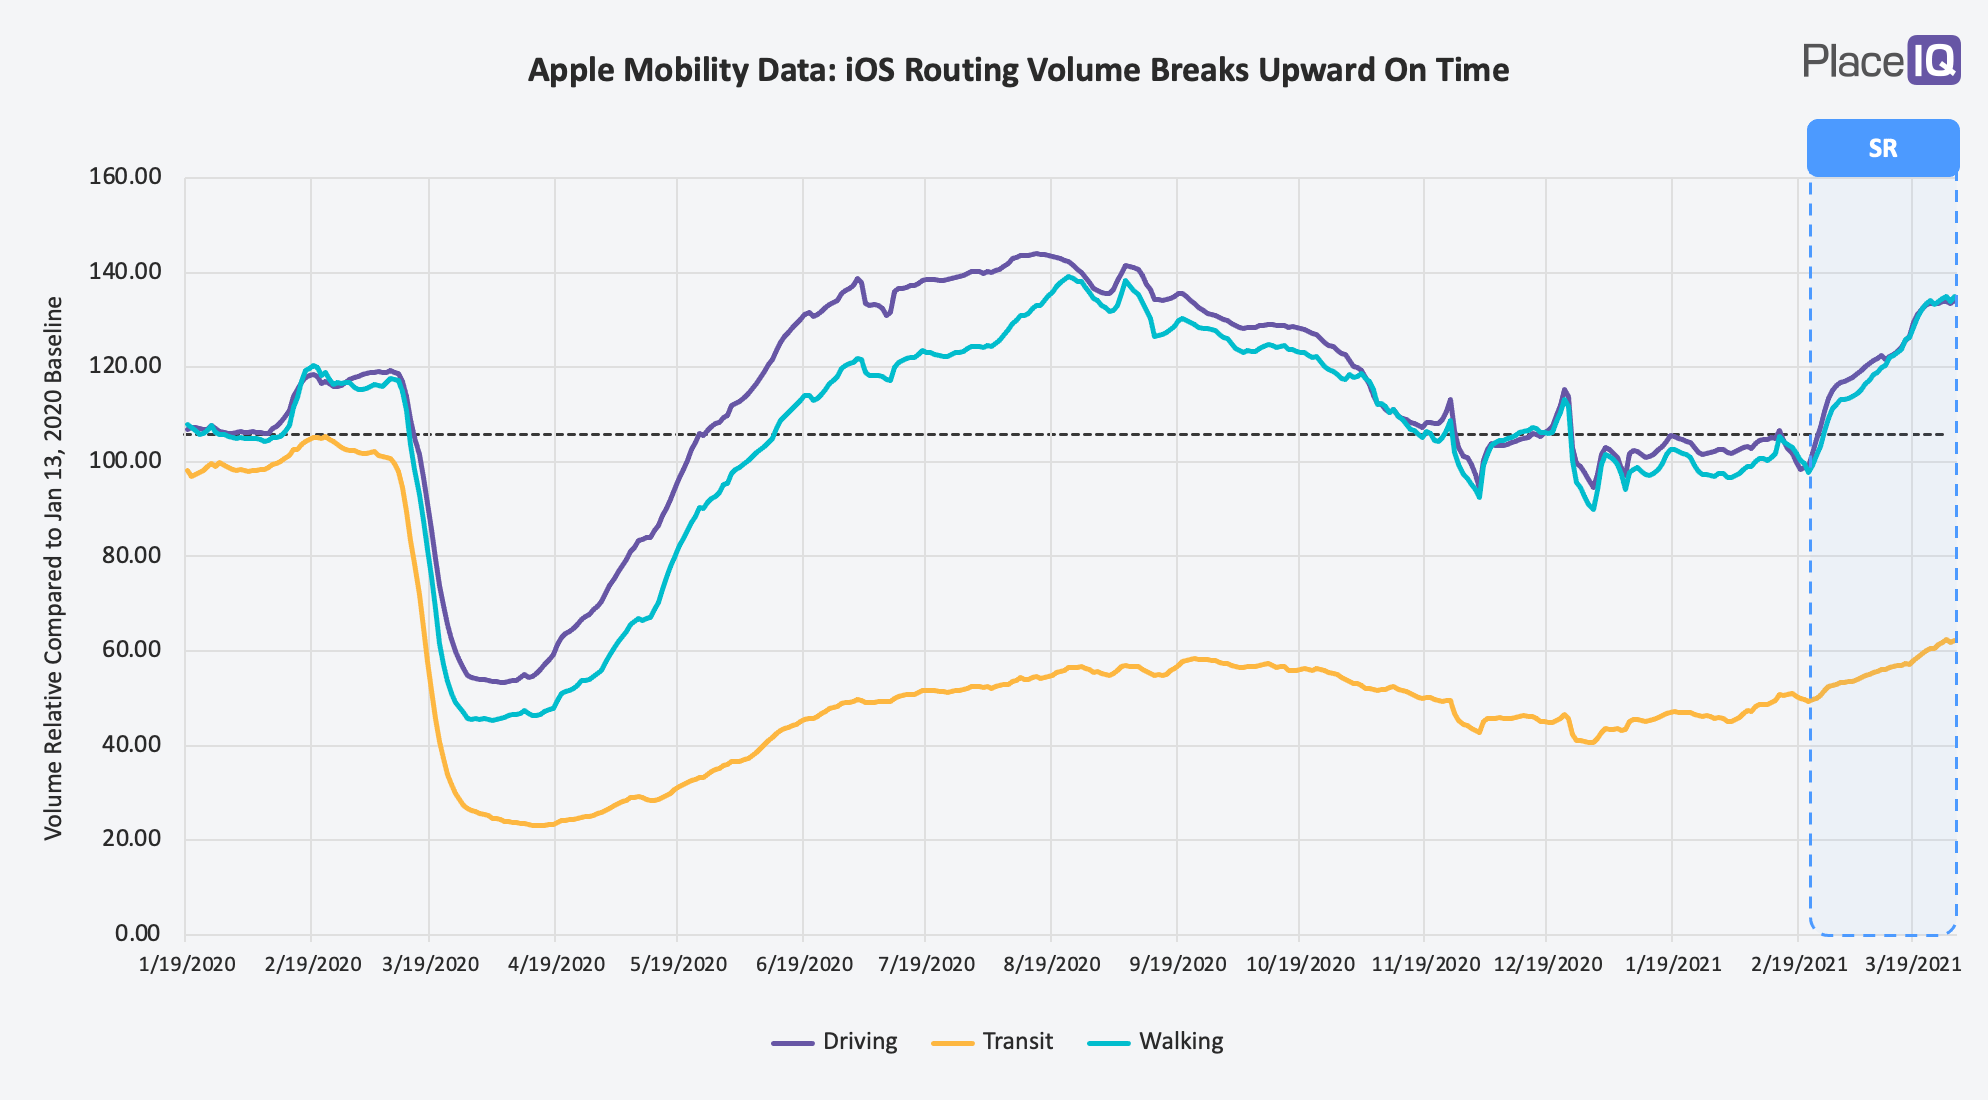 CHART: Apple Mobility Data: iOS Routing Volume Breaks Upward On Time